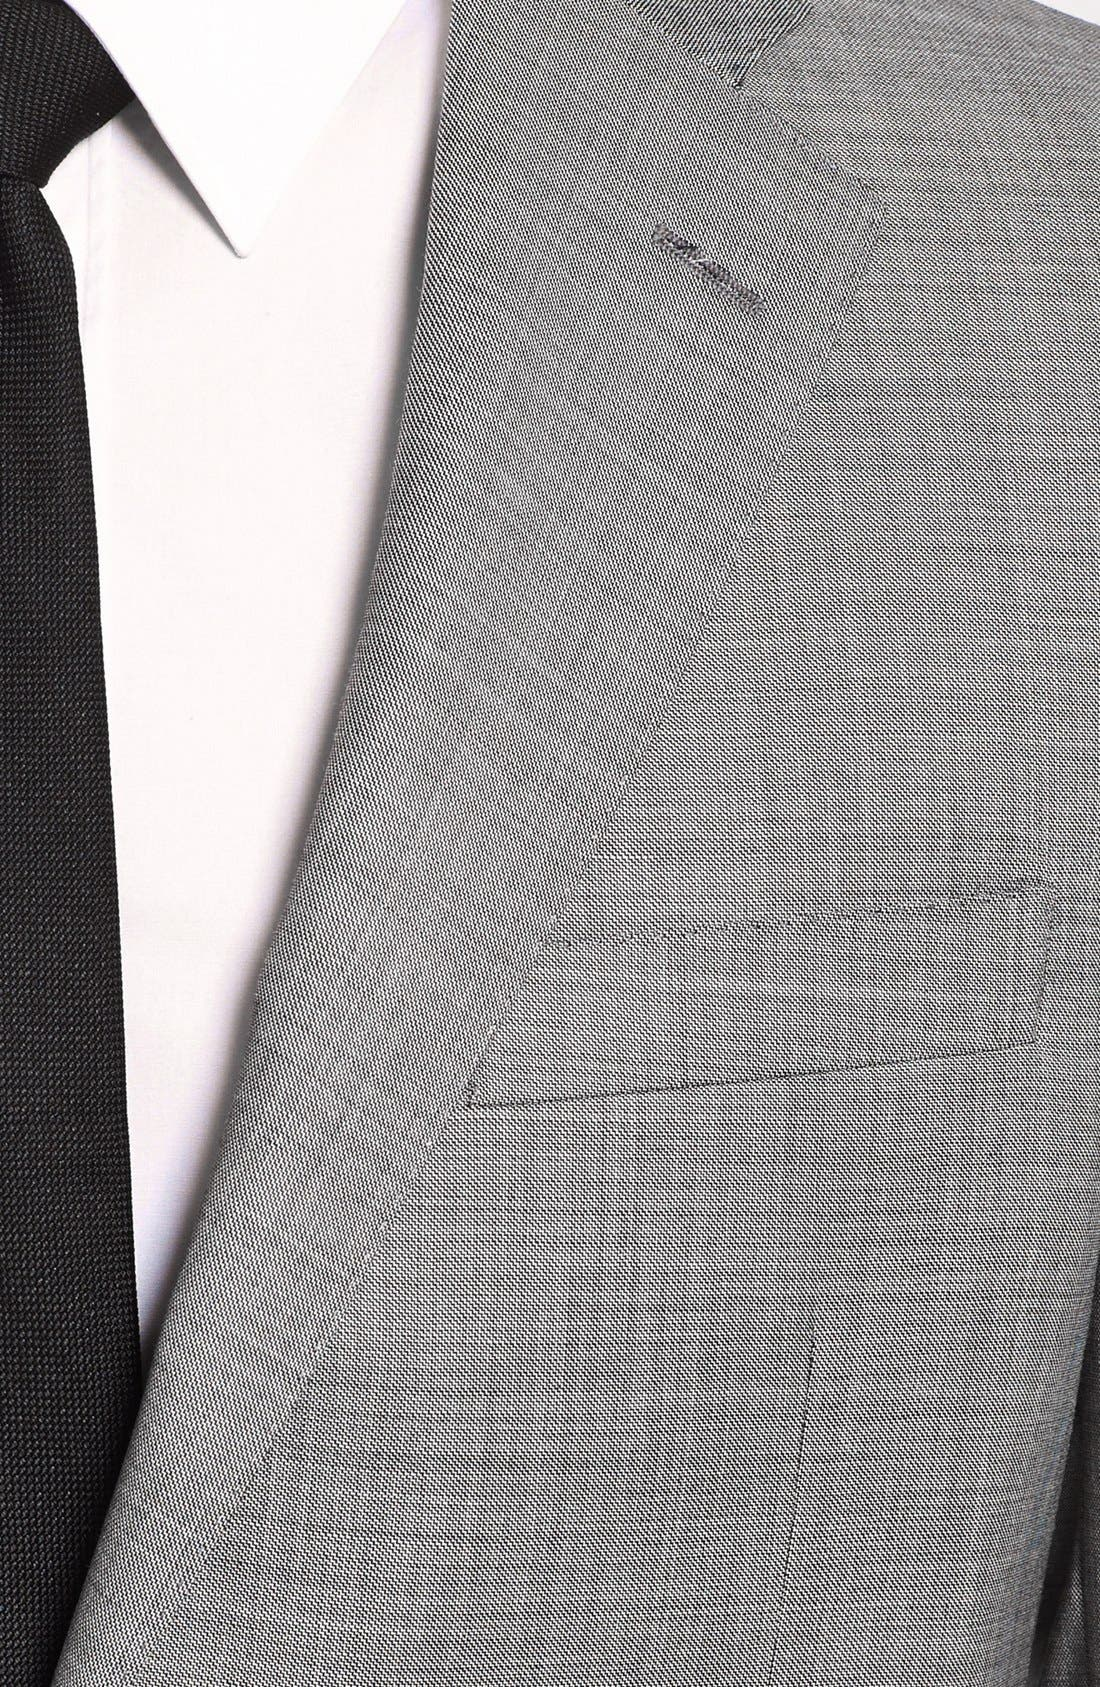 Alternate Image 5  - BEACON HIGH LOW MOHAIR 2BTN SUIT